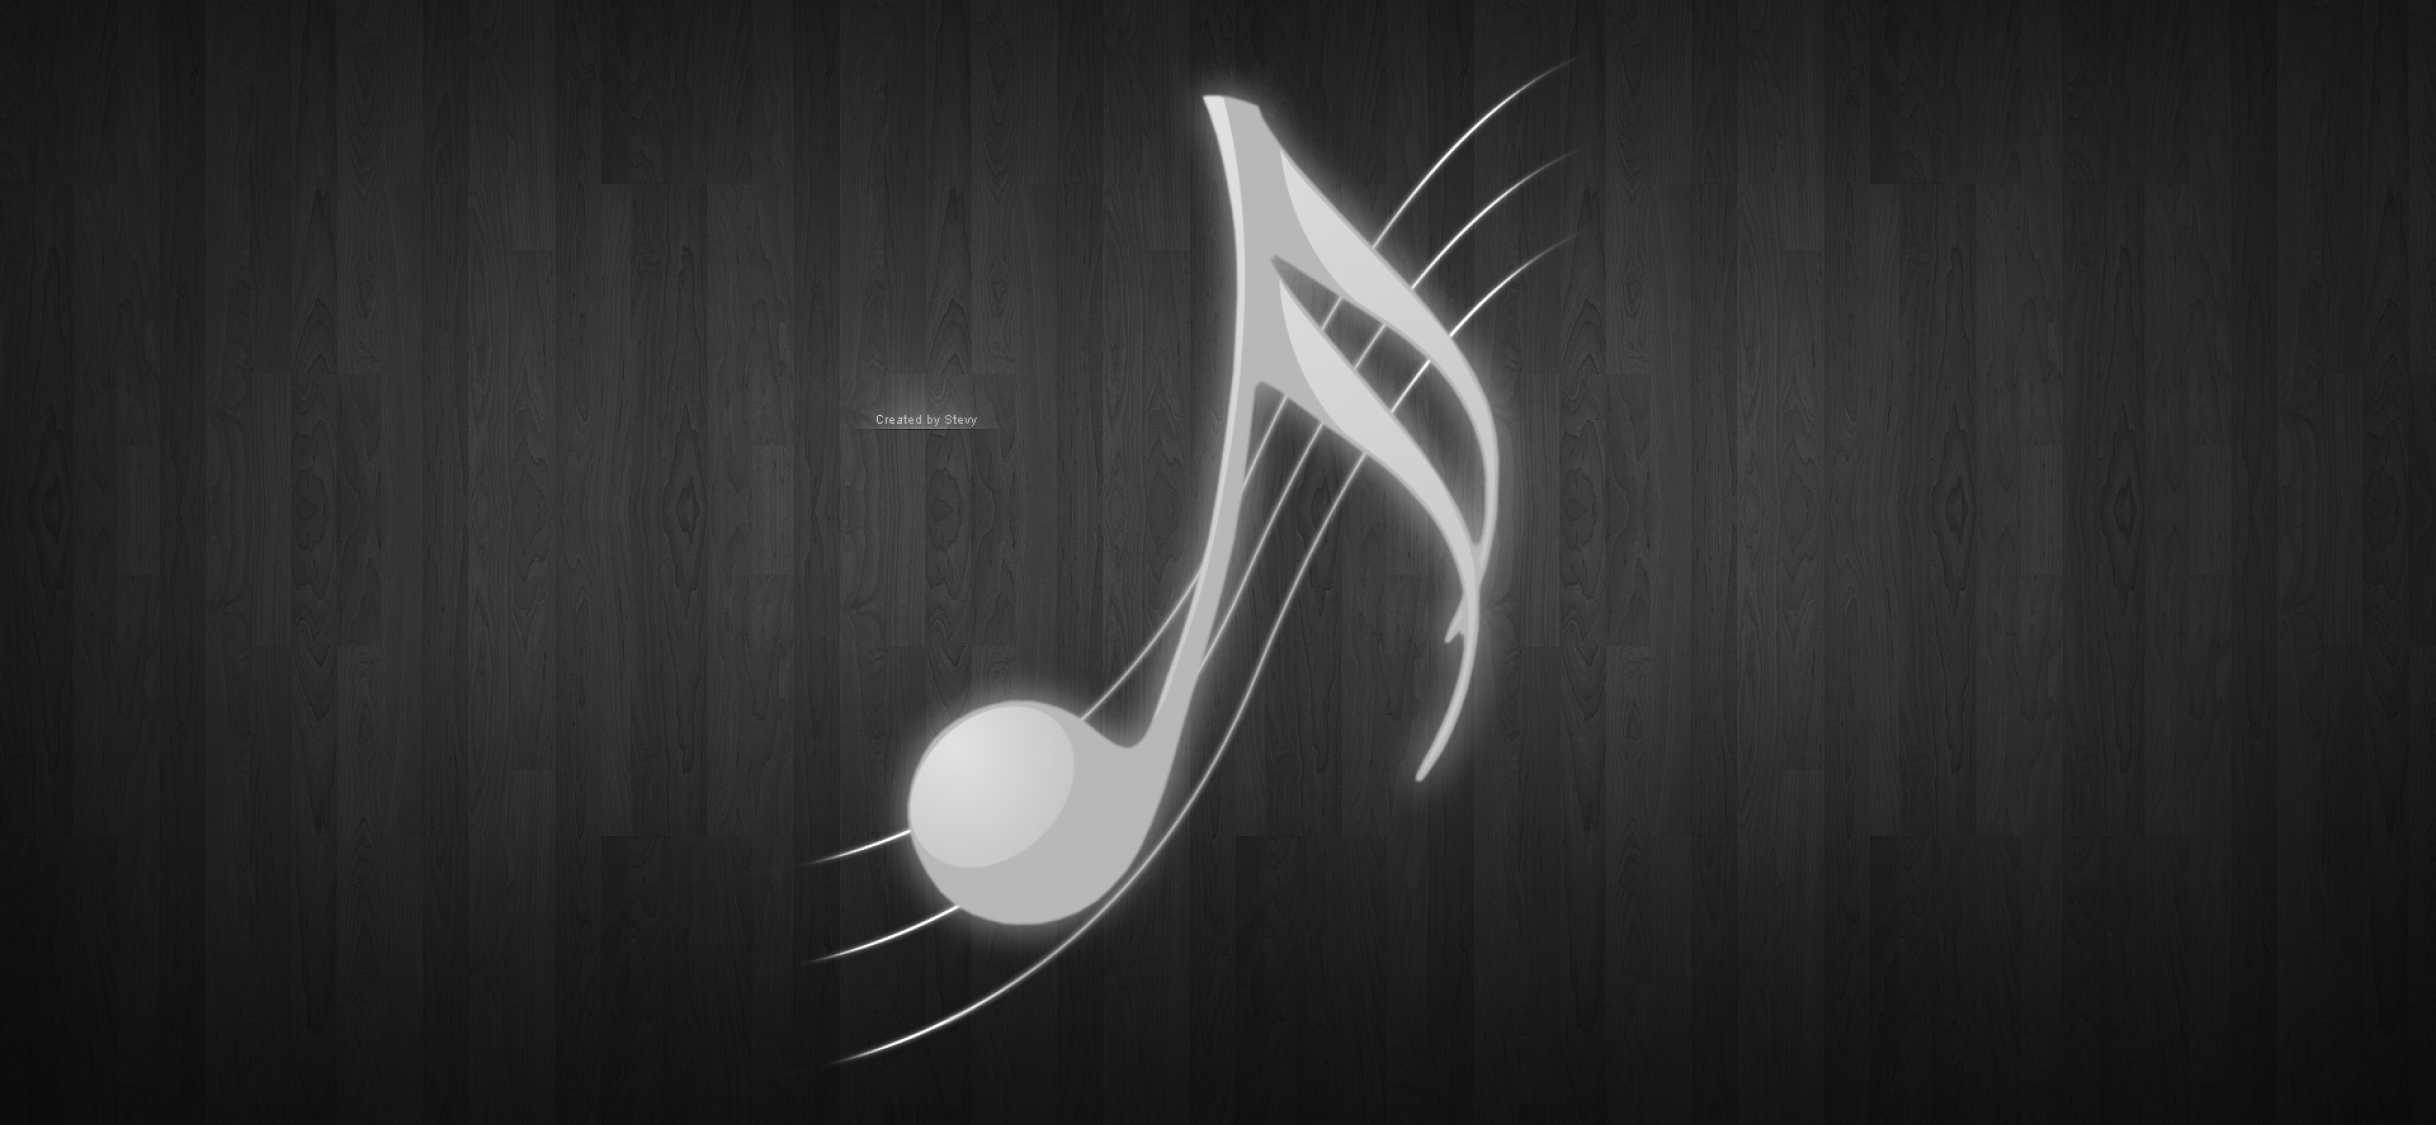 Music Notes Hd Wallpaper For Desktop And Mobiles Iphone X